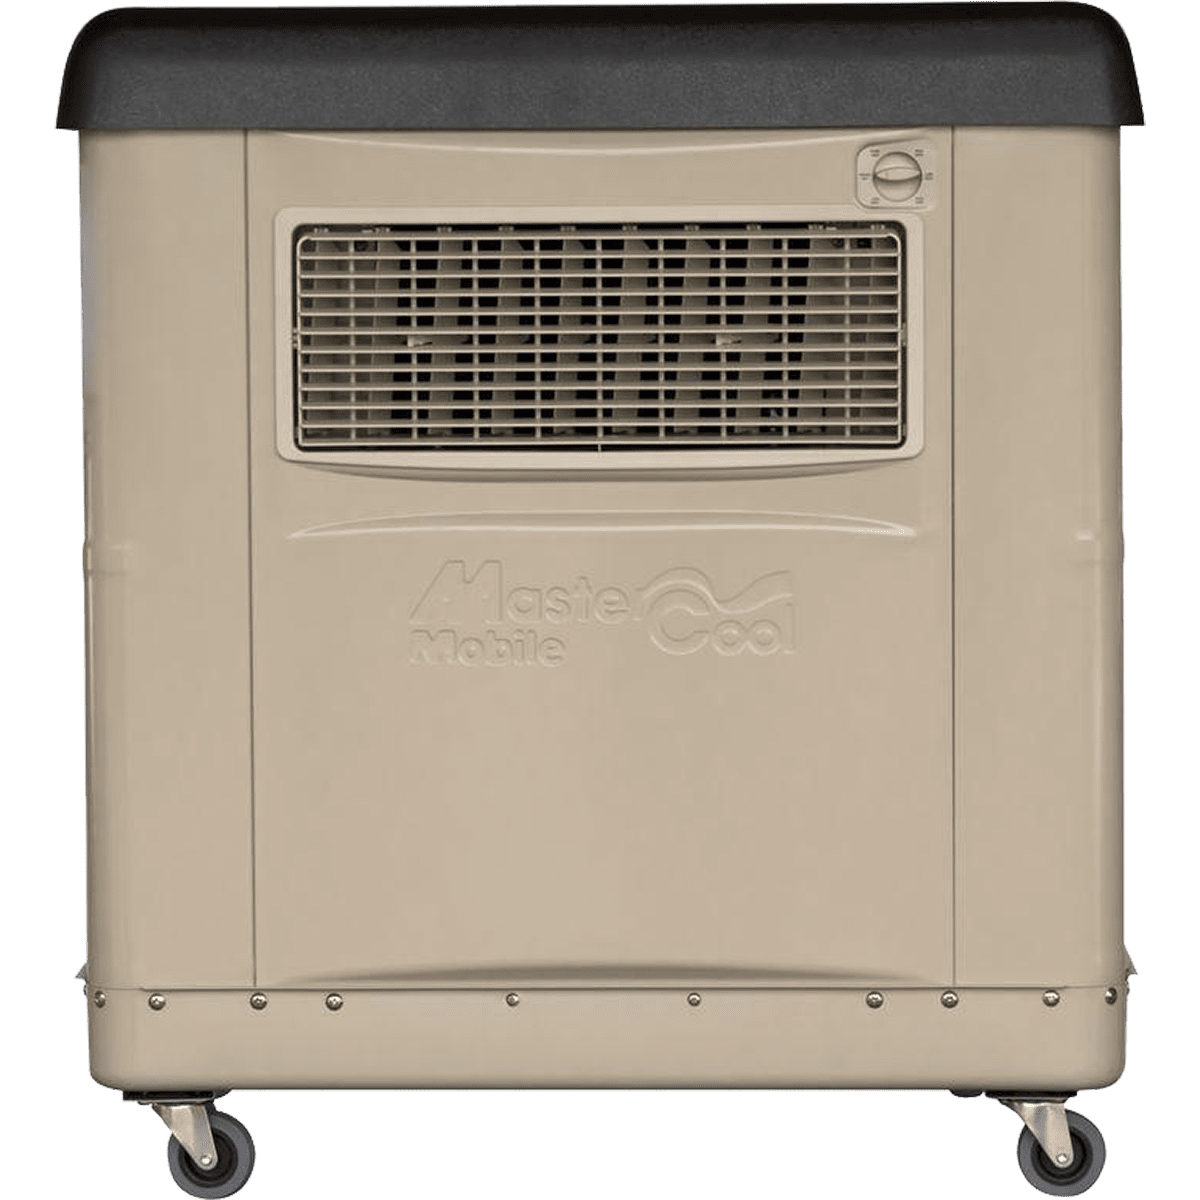 Incroyable MasterCool MMBT12 Evaporative Cooler   Front View